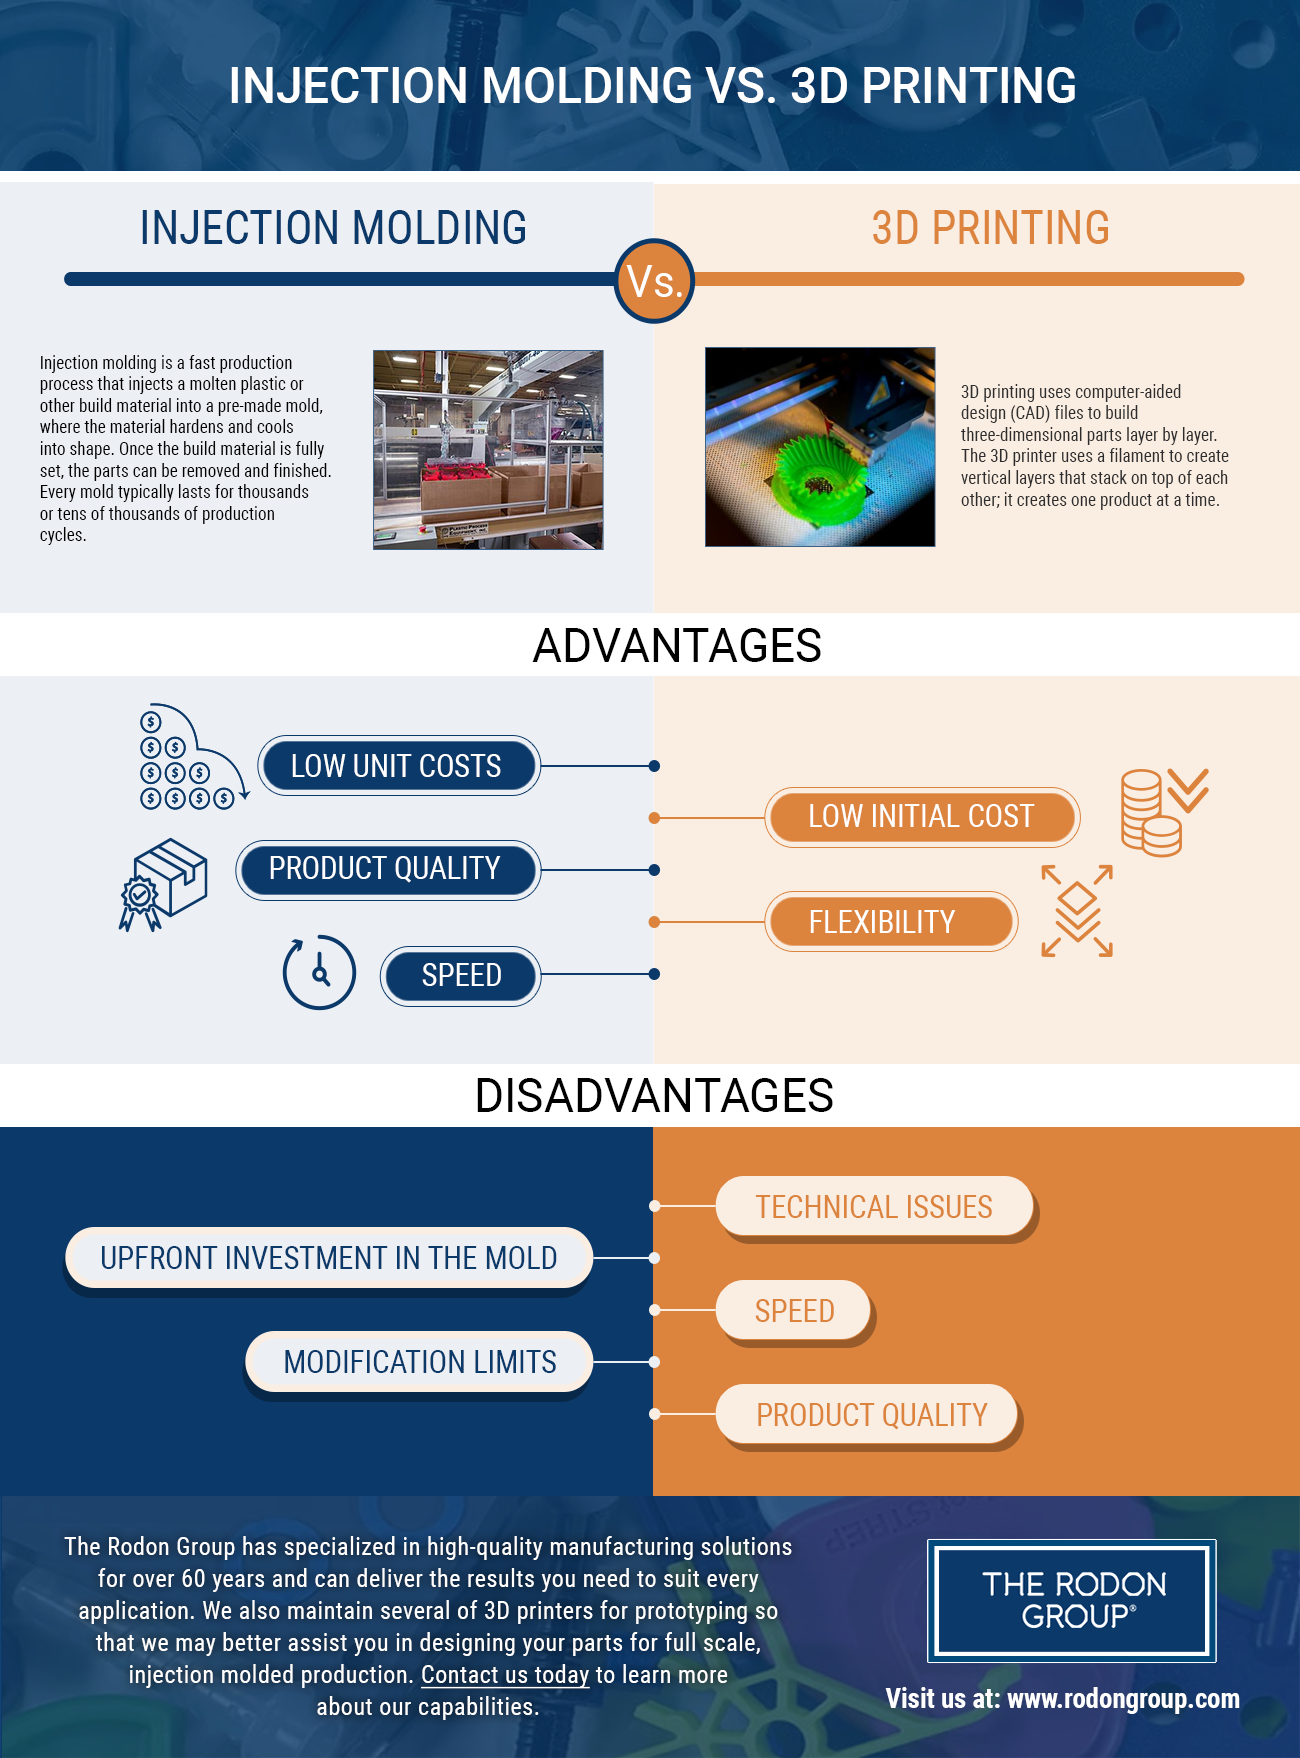 injection molding vs. 3D printing comparison infographic